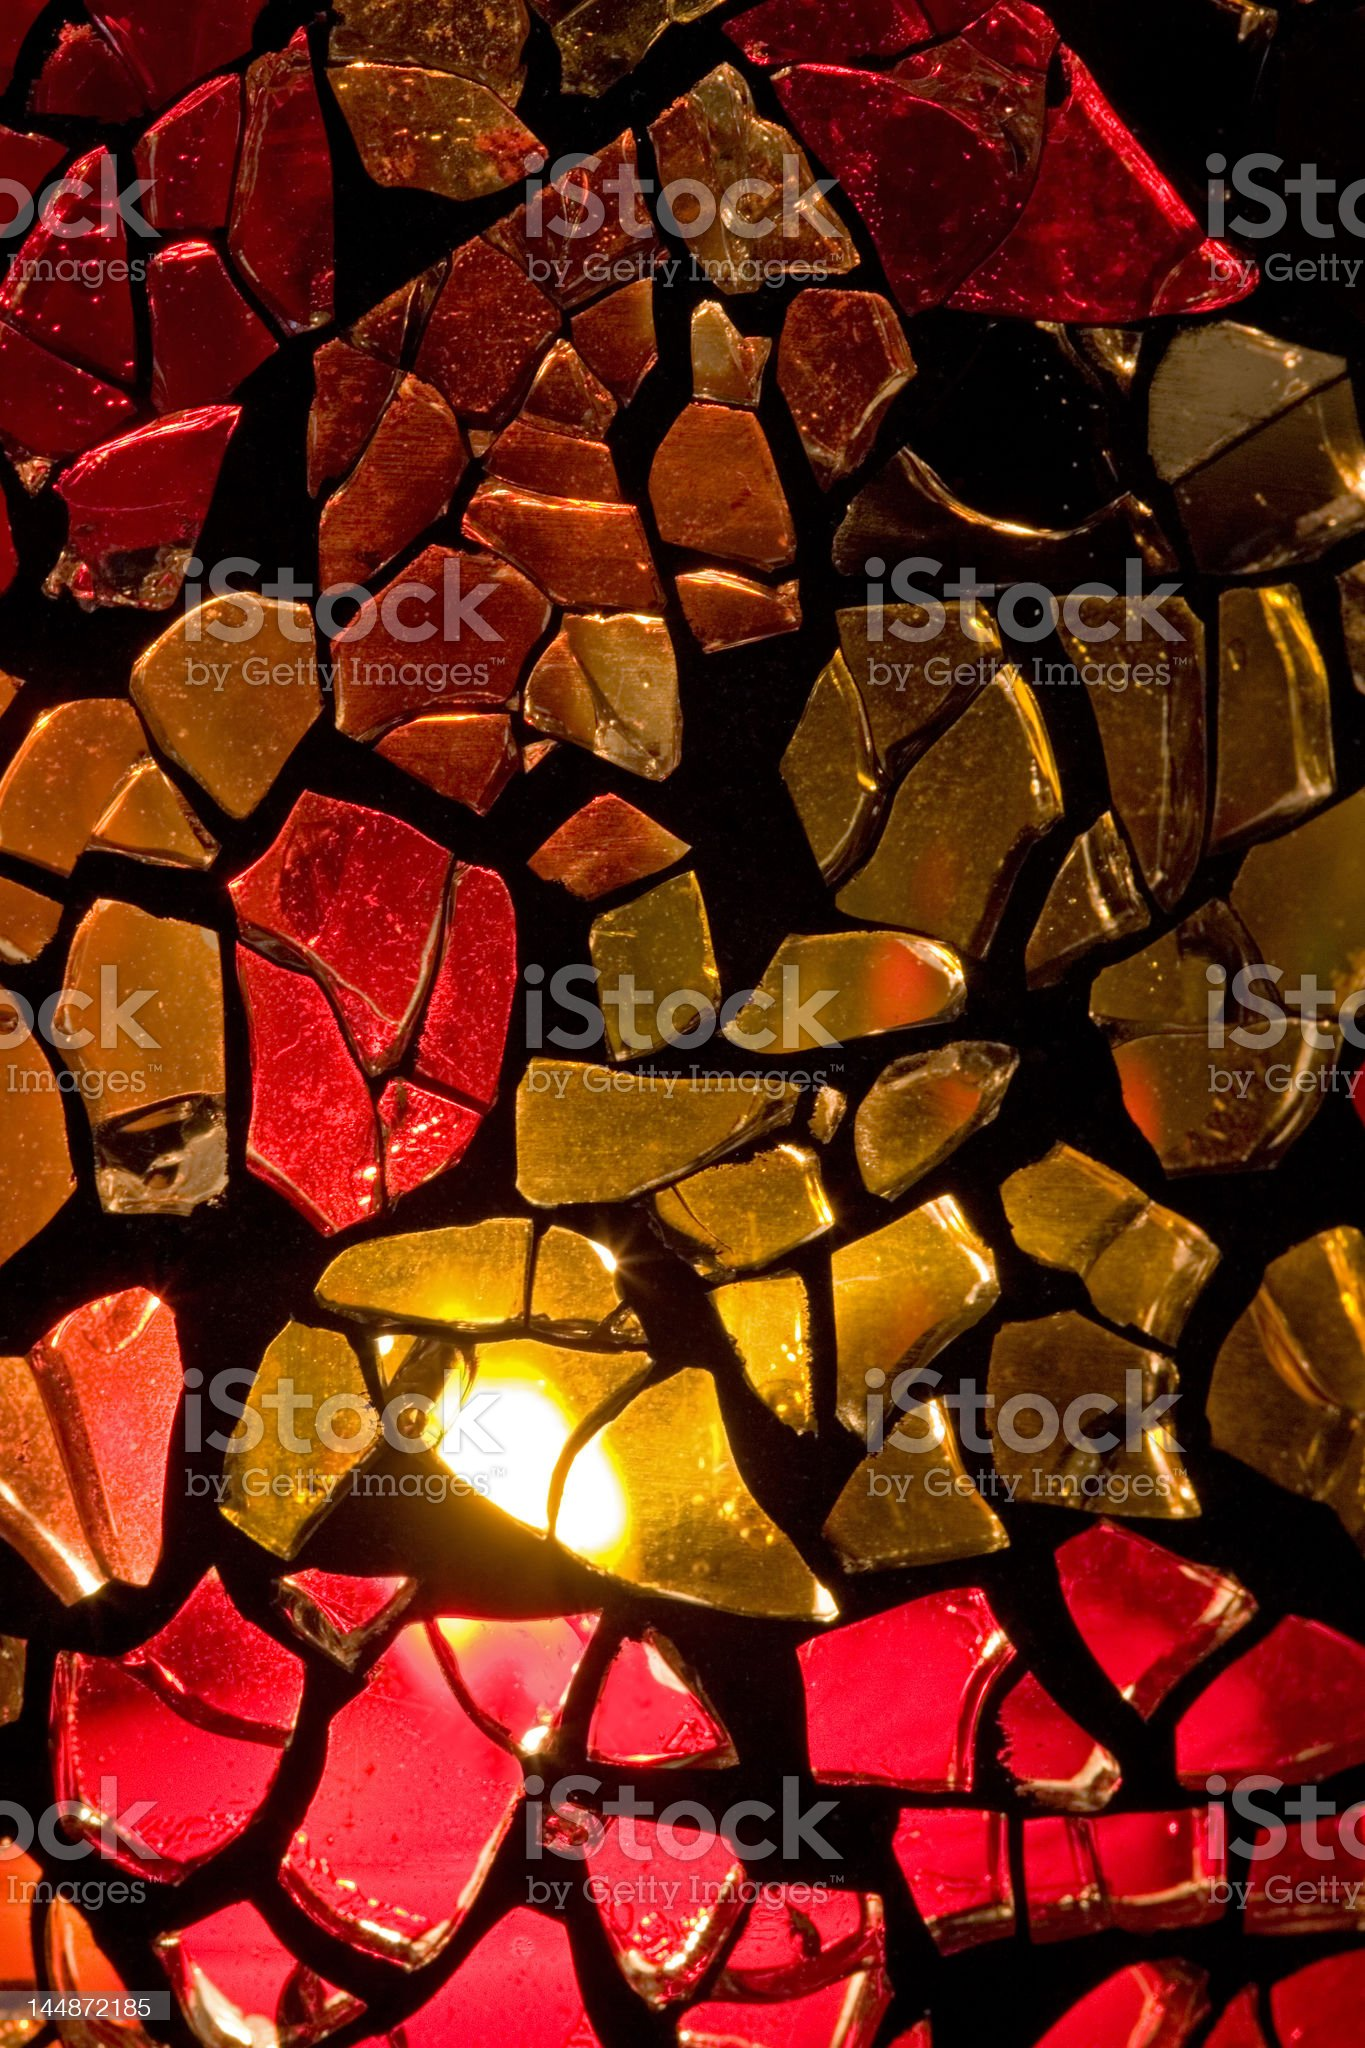 Homemade Stained Glass Vase royalty-free stock photo